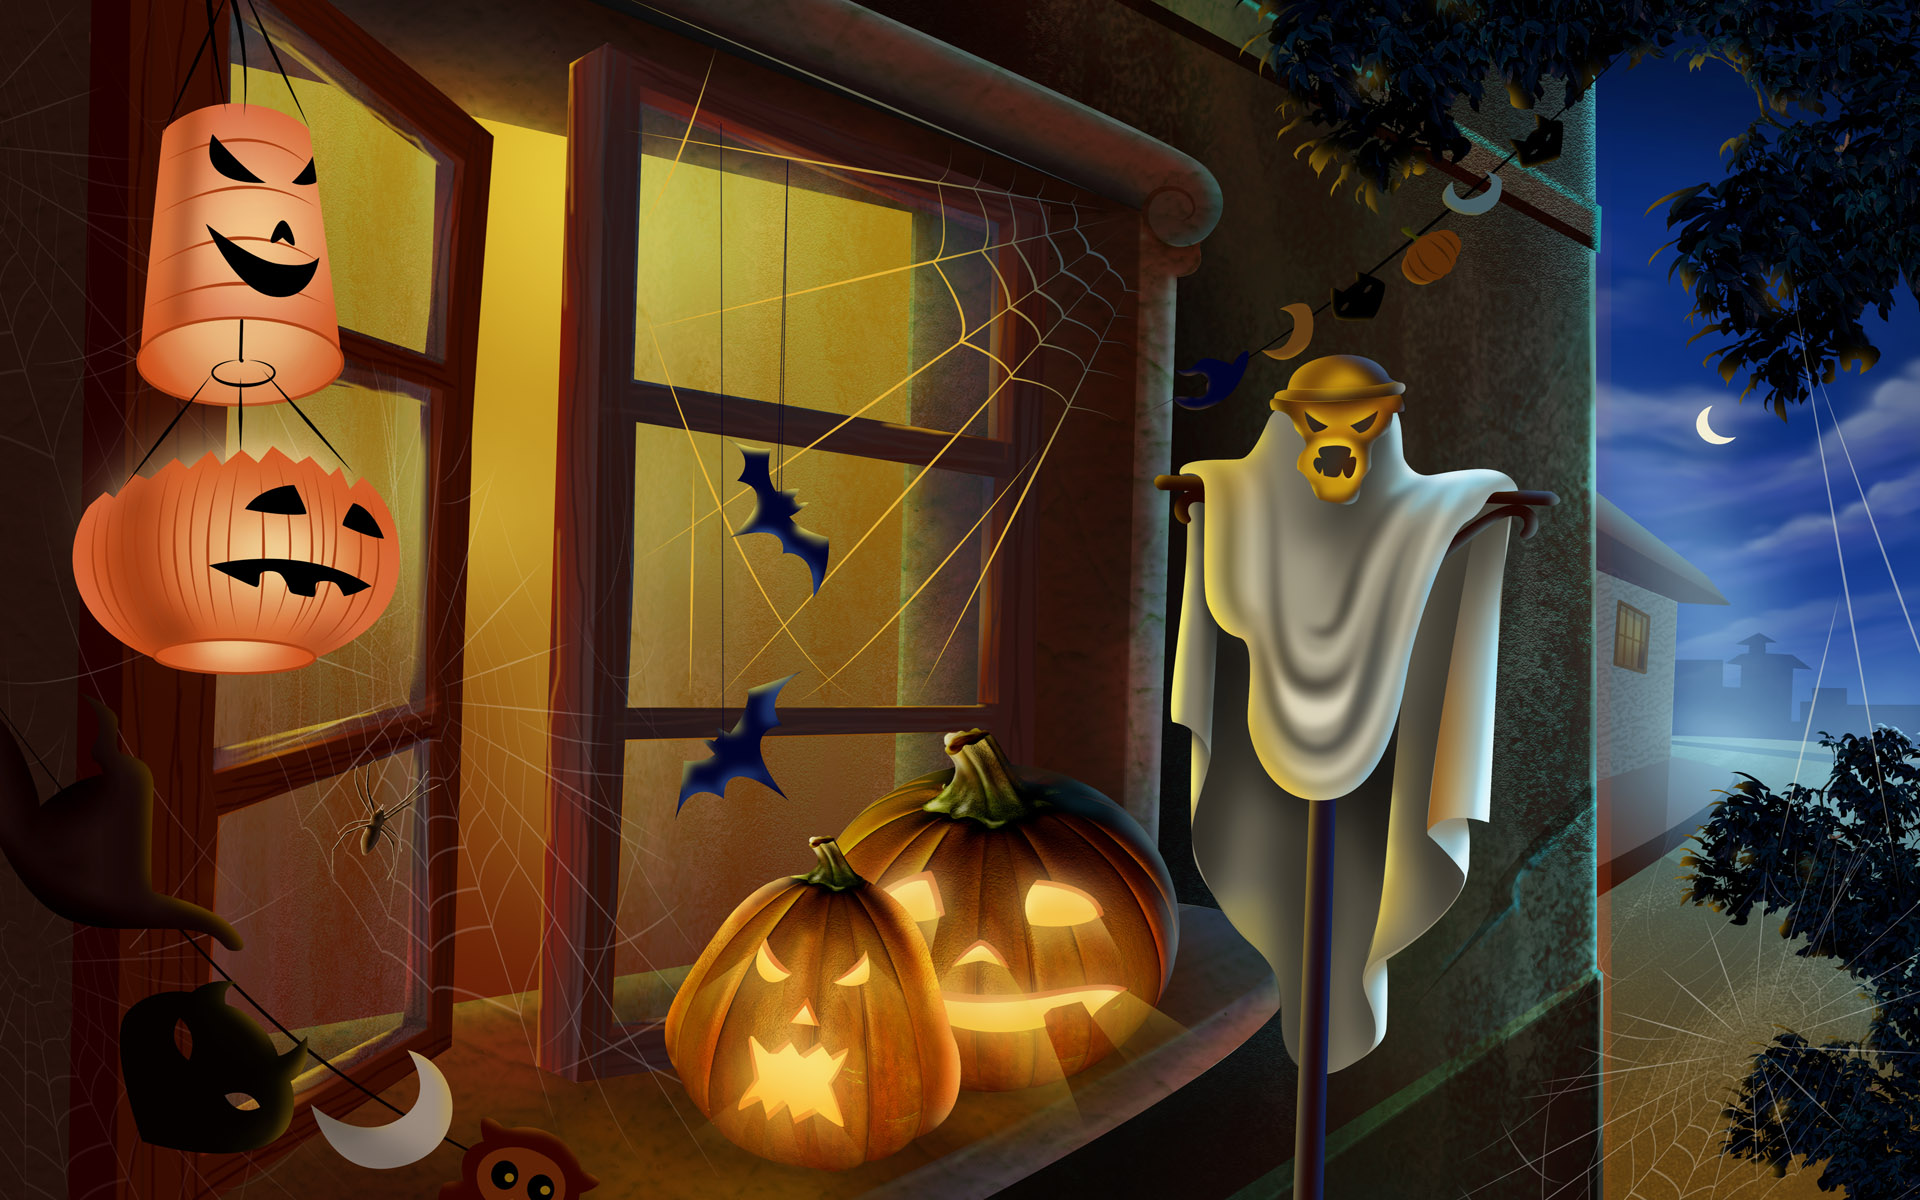 animated halloween wallpaper windows 7 With Resolutions 19201200 1920x1200